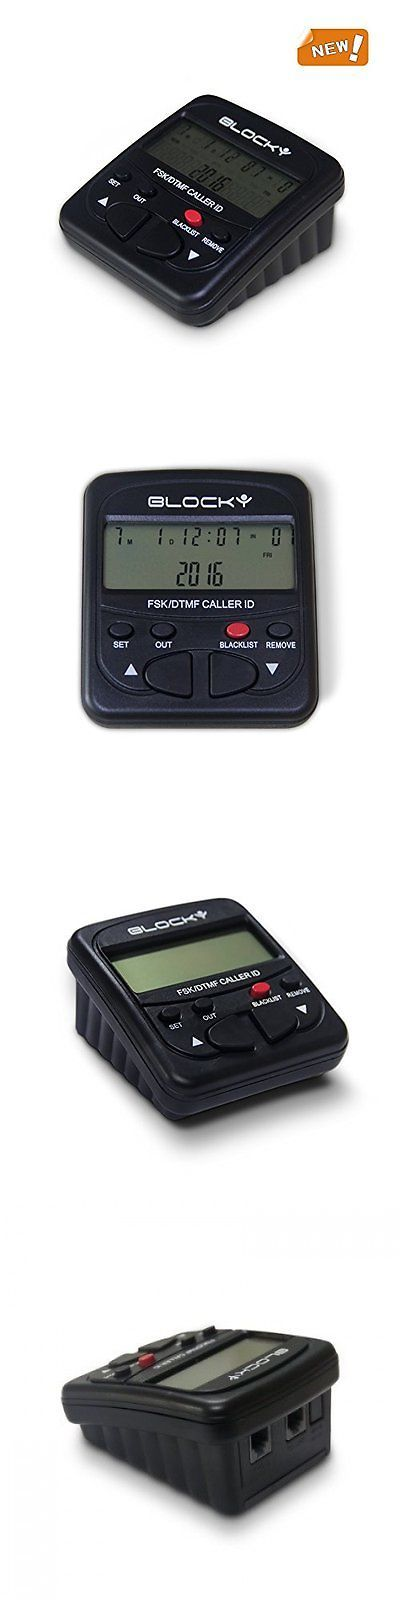 Caller ID Devices: Callany Phone Call Blocker With Caller Id Display- Block Unwanted Calls,Junk BUY IT NOW ONLY: $46.19